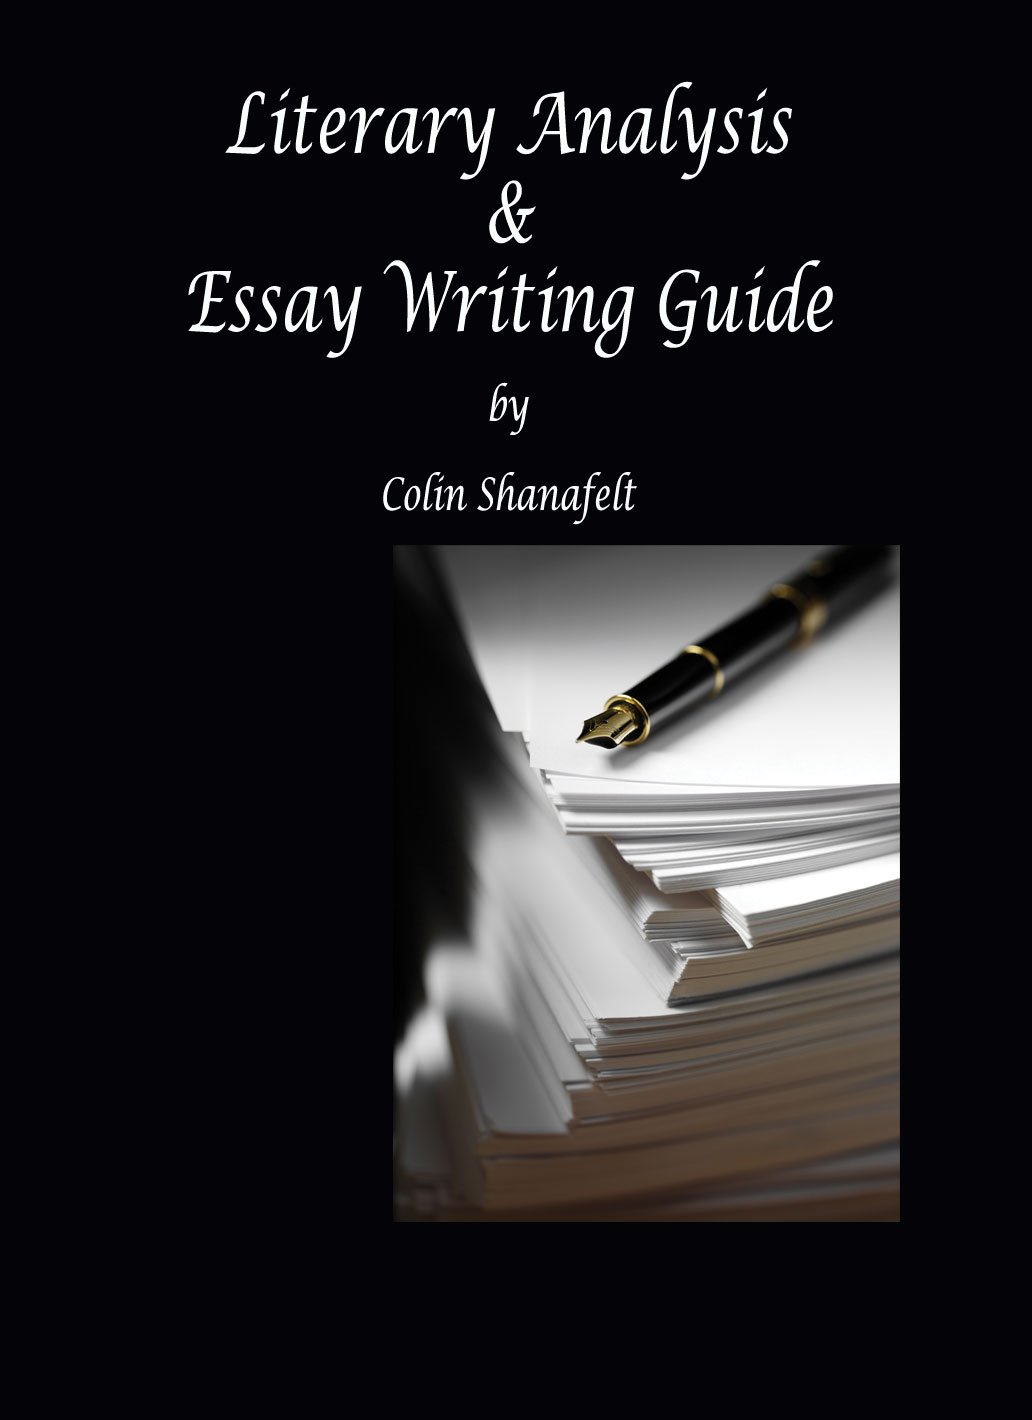 literary analysis essay writing guide colin shanafelt literary analysis essay writing guide colin shanafelt 9780982989531 com books